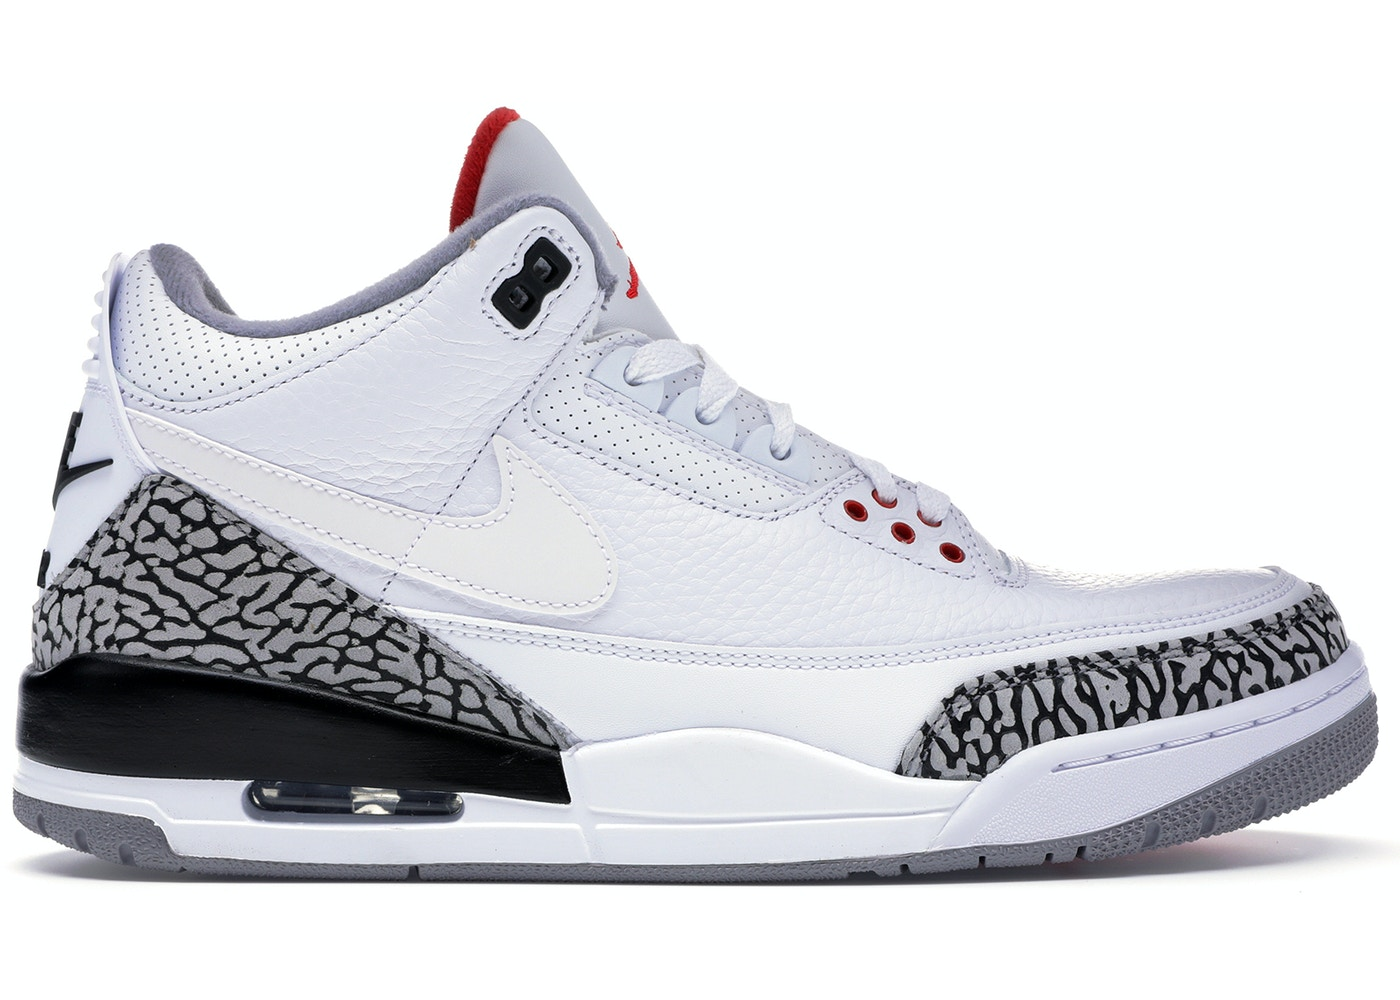 825dbc8101a Buy Air Jordan 3 Shoes & Deadstock Sneakers